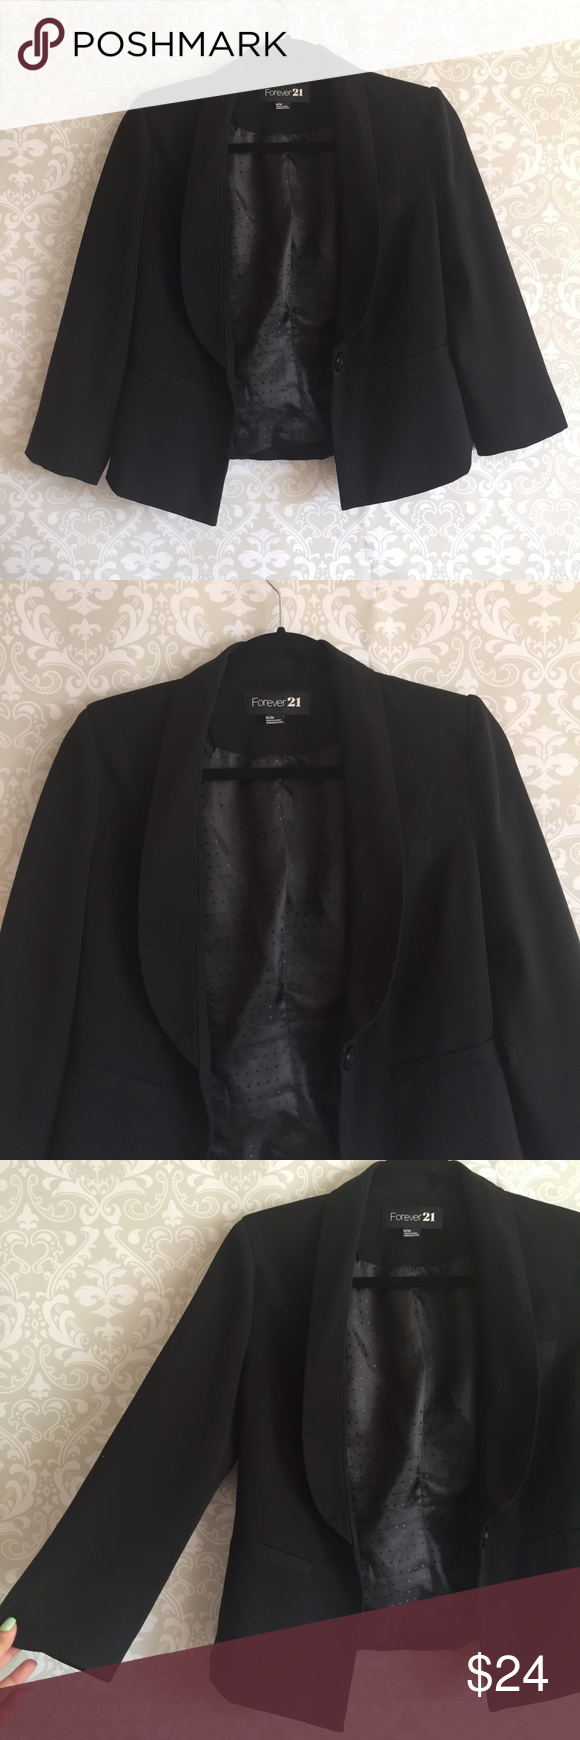 "✨NEW LISTING✨ Black Fitted Blazer Fitted blazer from Forever 21 perfect for work! Size medium. Length of blazer is 24"", pit to pit is 18"", length of sleeve is 19"" and arm opening is 9"". Gently used, very good condition! Please comment below for more measurement info! 💕 Note: I do not model but  I can take a picture of this item on a mannequin upon request. Forever 21 Jackets & Coats Blazers"